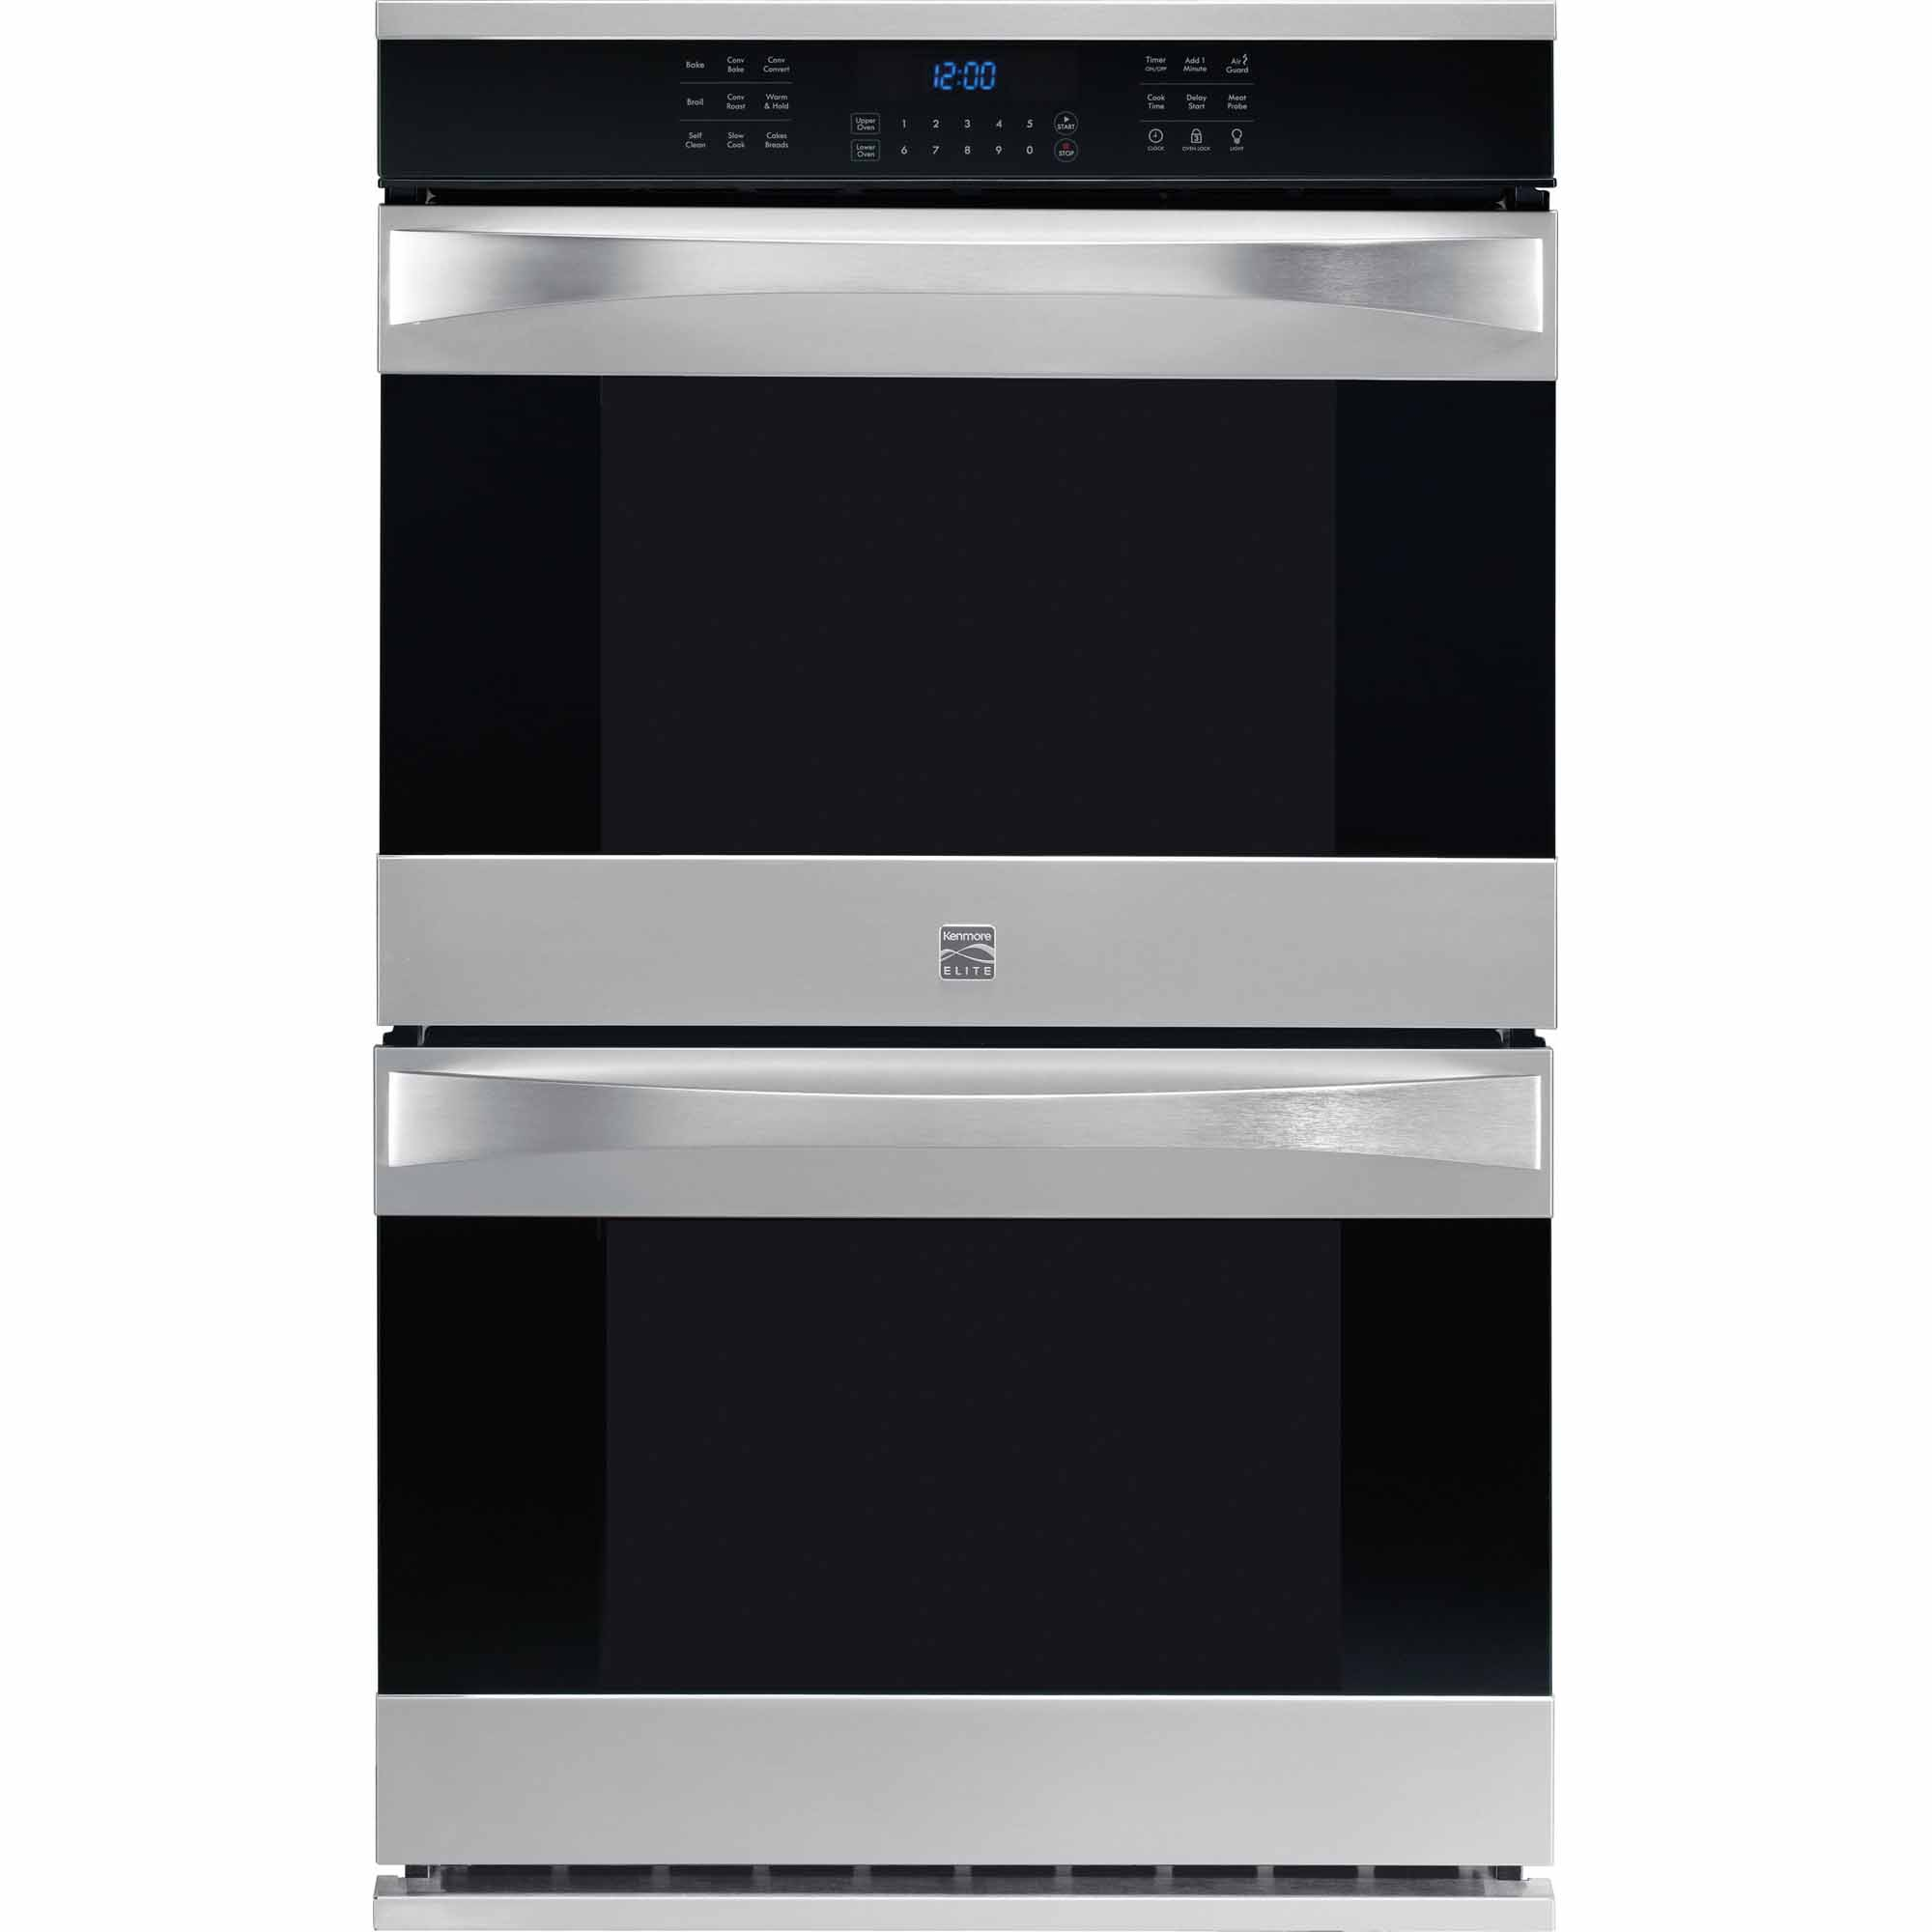 Kenmore Elite 48473 30 Electric Double Wall Oven w/ True Convection™  - Stainless Steel